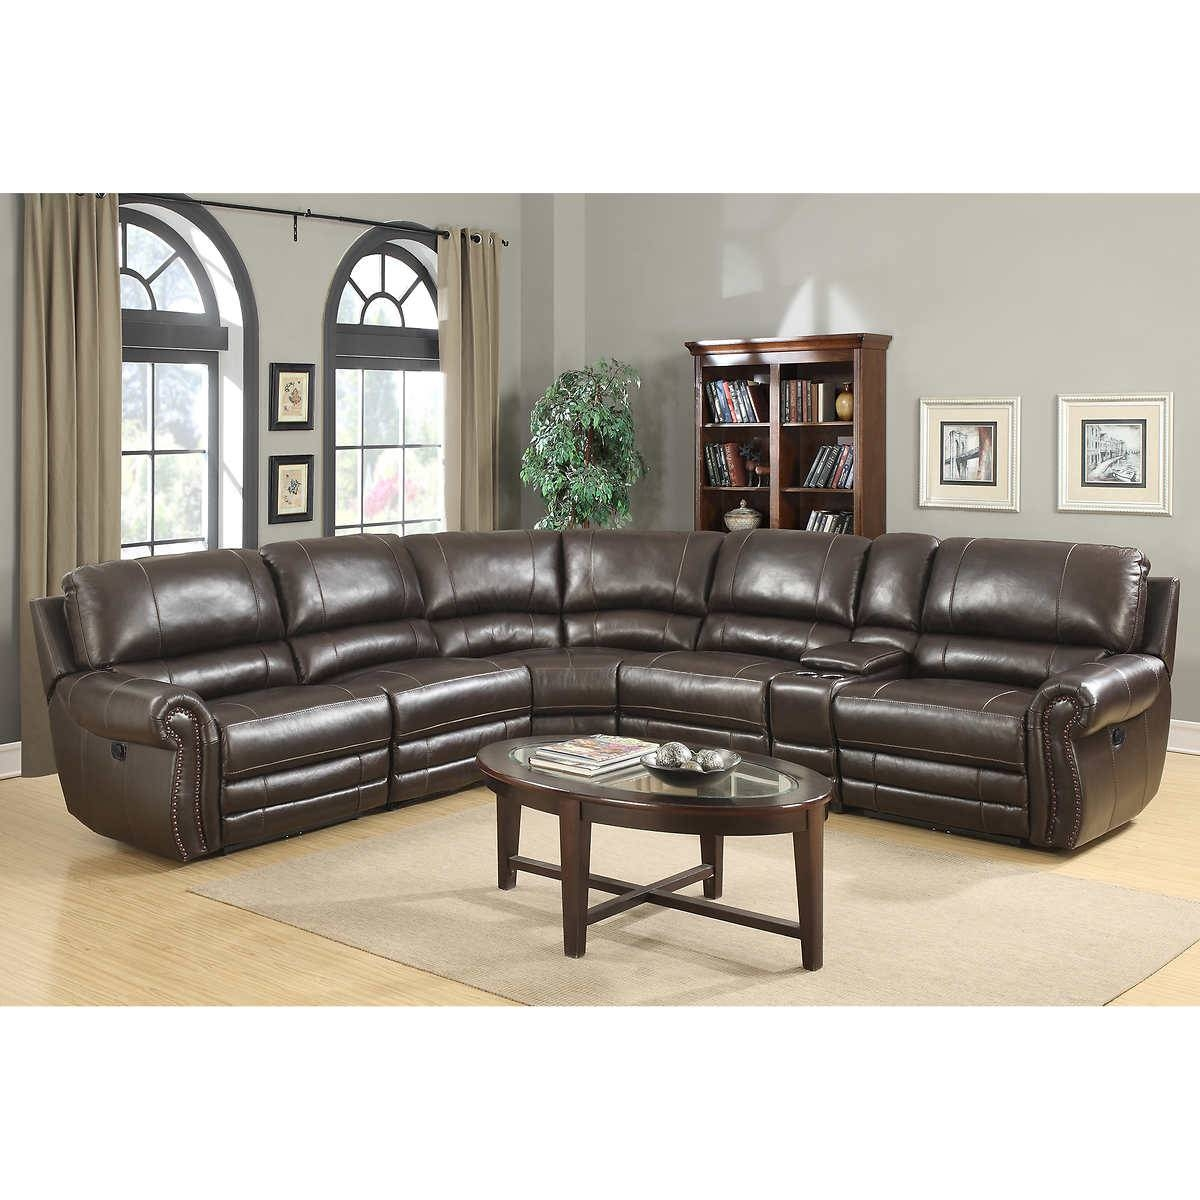 Leather Sofa Sectionals On Sale - Fjellkjeden in Leather Sofa Sectionals for Sale (Image 14 of 30)